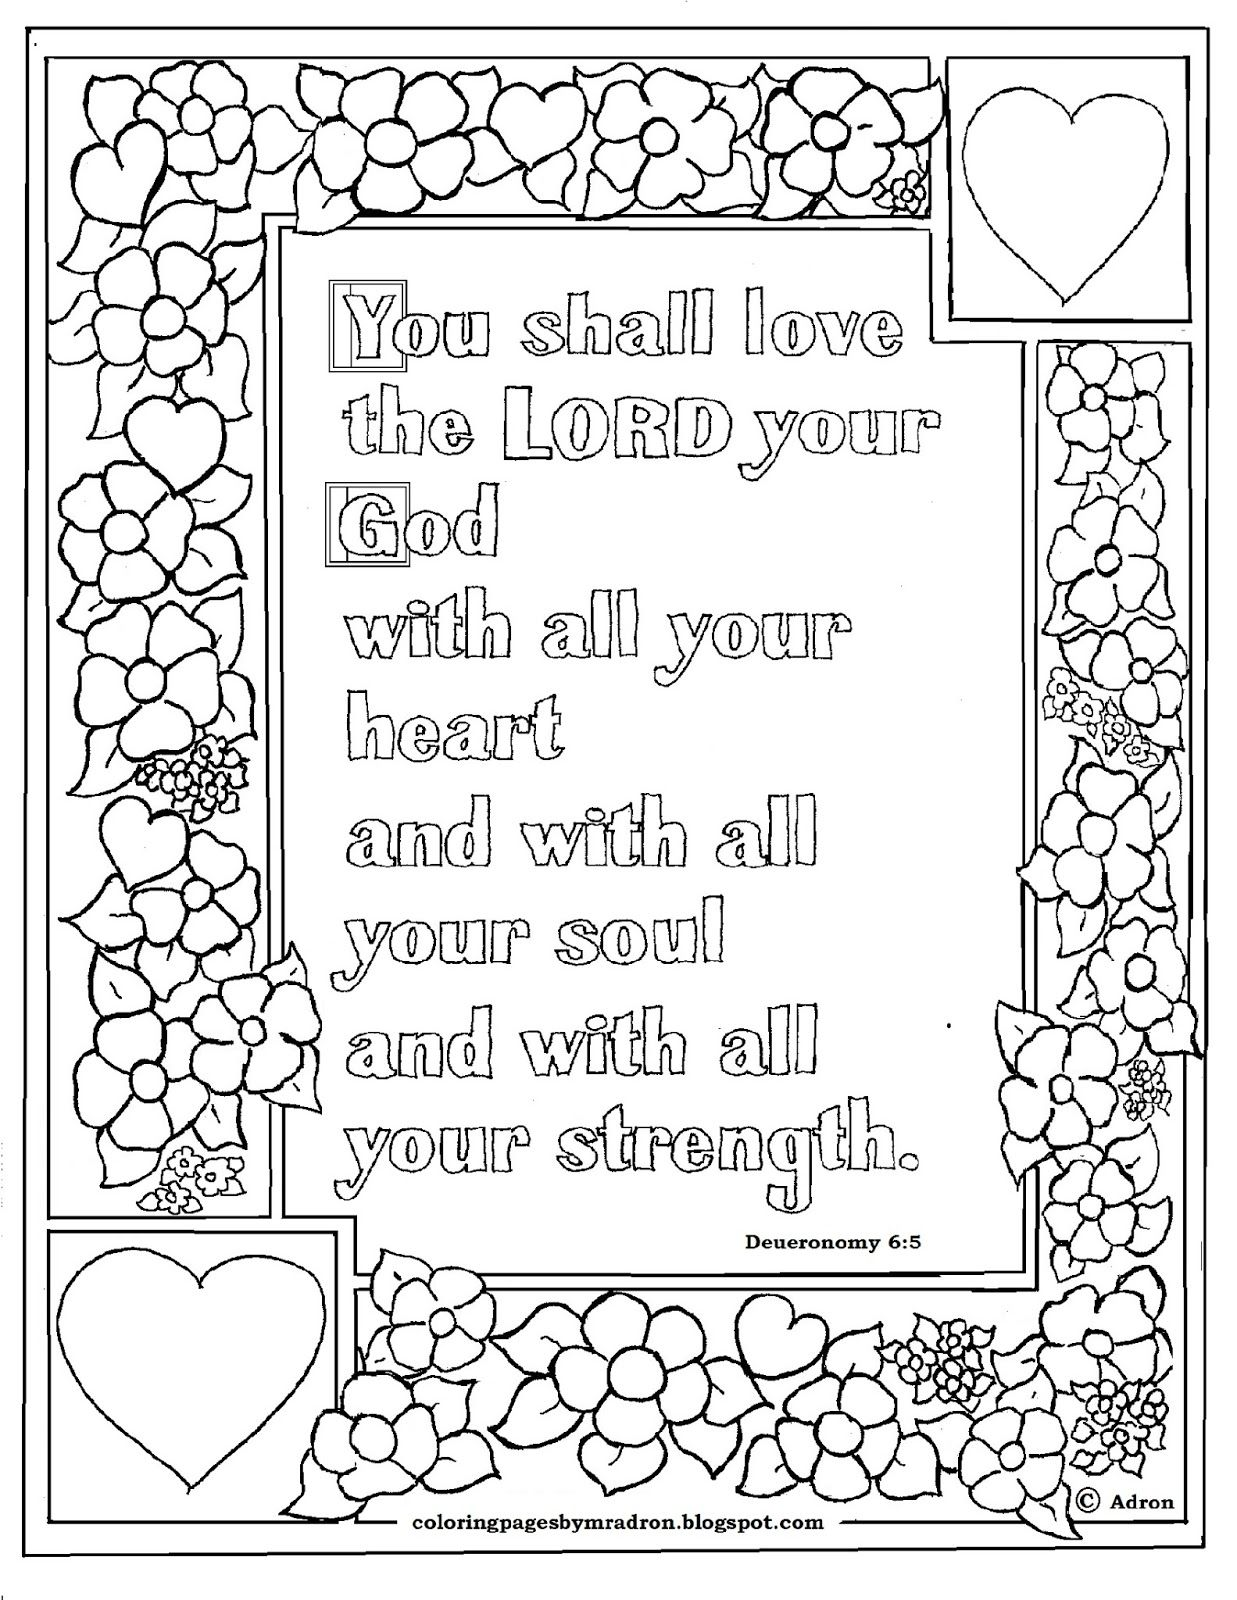 Deuteronomy 6 5 Bible Verse To Print And Color This Is A Free Printable Bible Verse Coloring